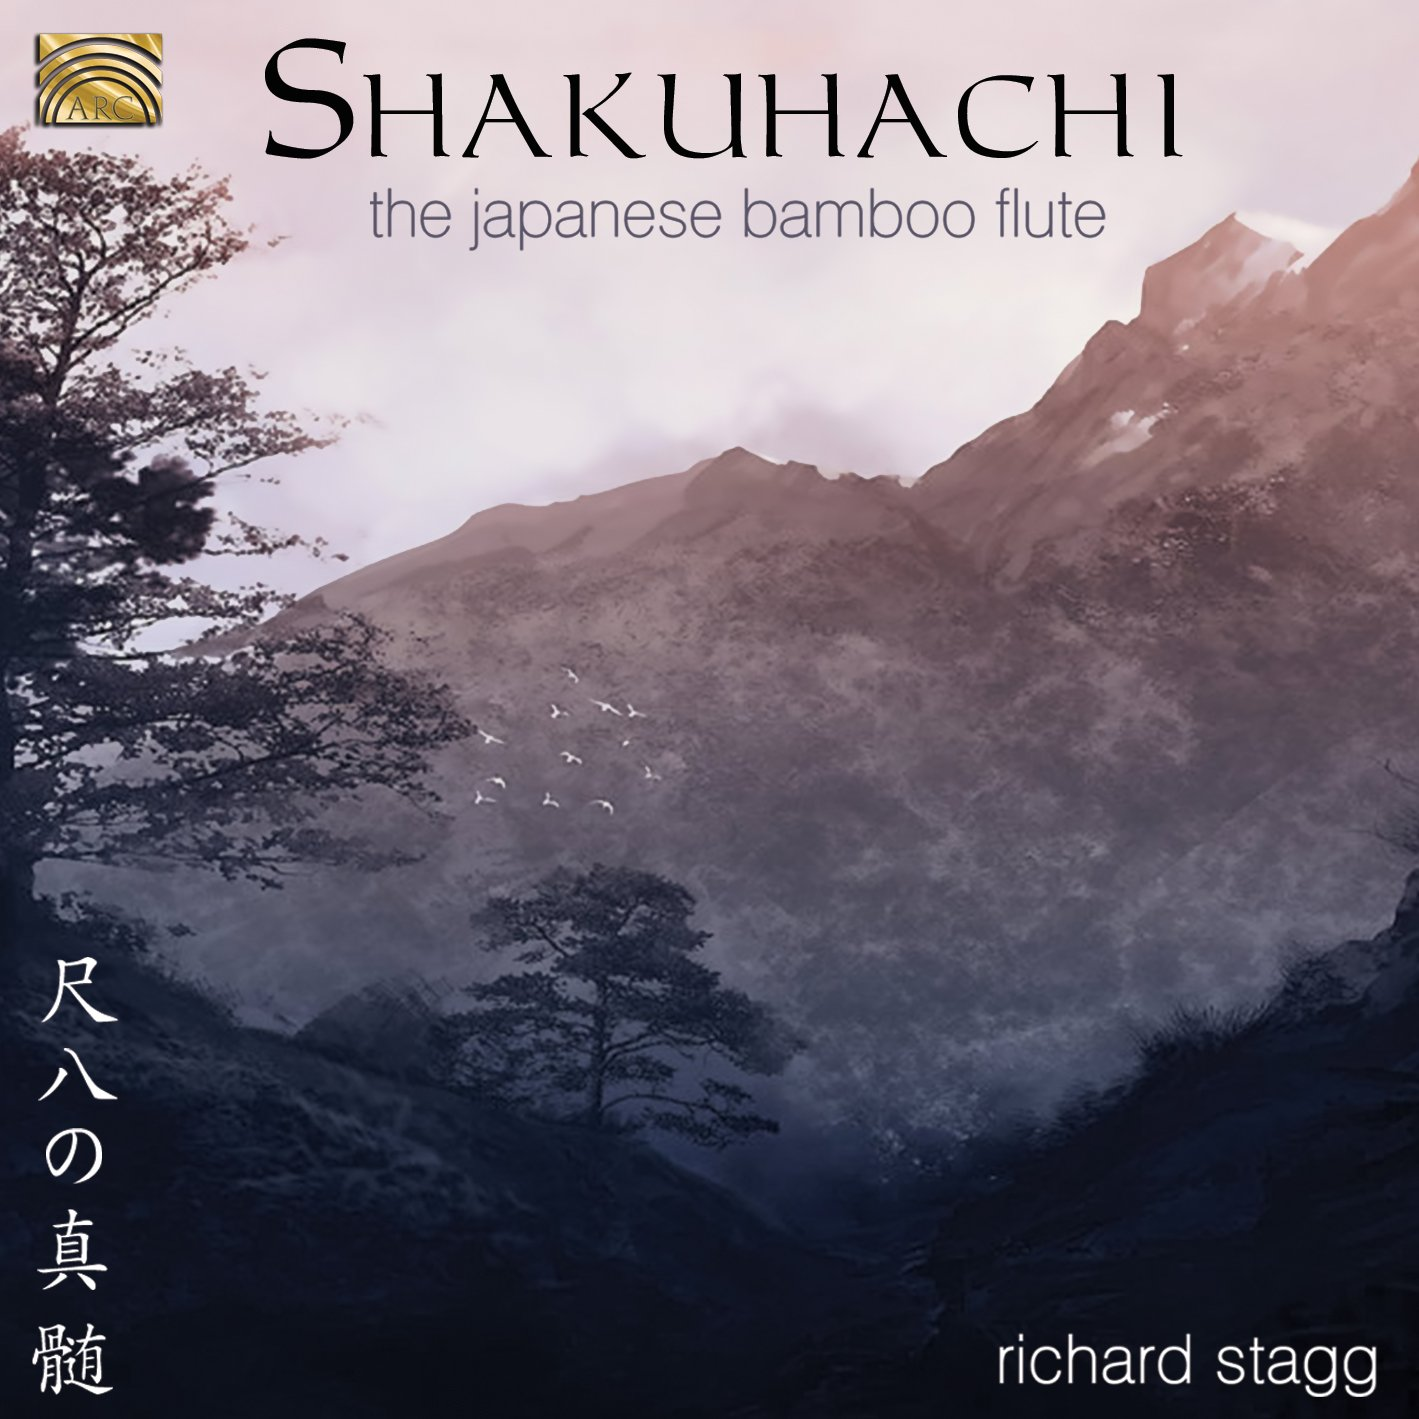 https://www.amazon.co.uk/Shakuhachi-Japanese-Bamboo-Richard-Stagg/dp/B00NJ2ZDNU/ref=sr_1_7?ie=UTF8&qid=1485276910&sr=8-7&keywords=shakuhachi